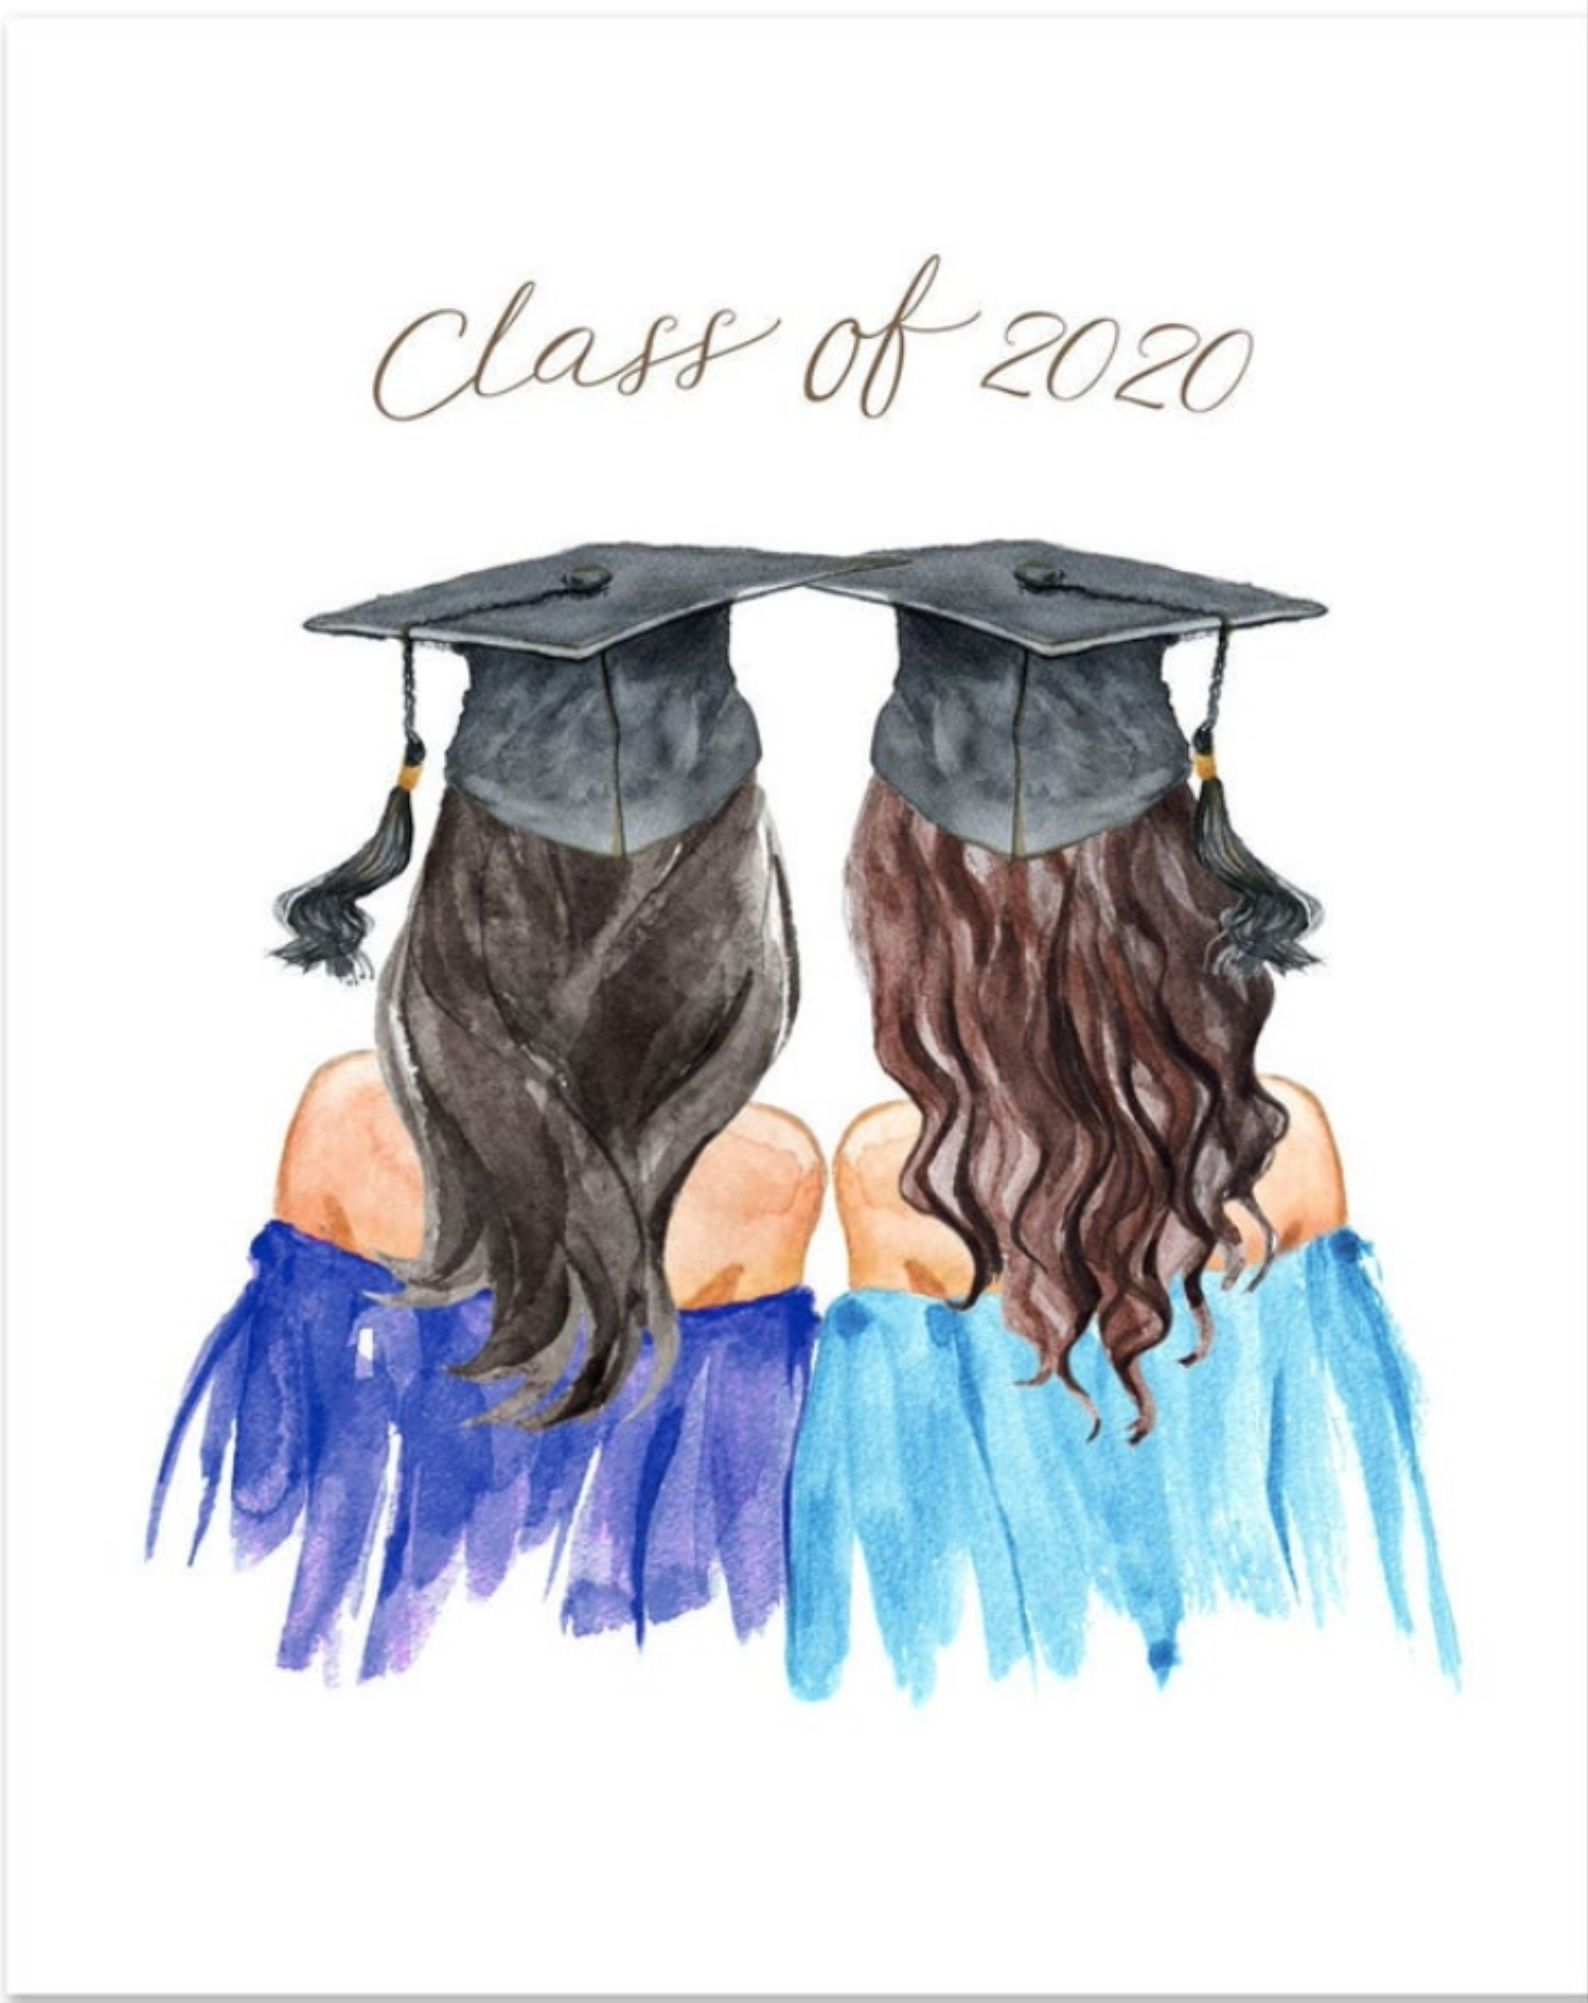 Graduation Gifts For Best Friend Class Of 2020 Gift Ideas Etsy In 2020 Graduation Gifts For Friends Graduation Gifts For Best Friend Friend Graduation